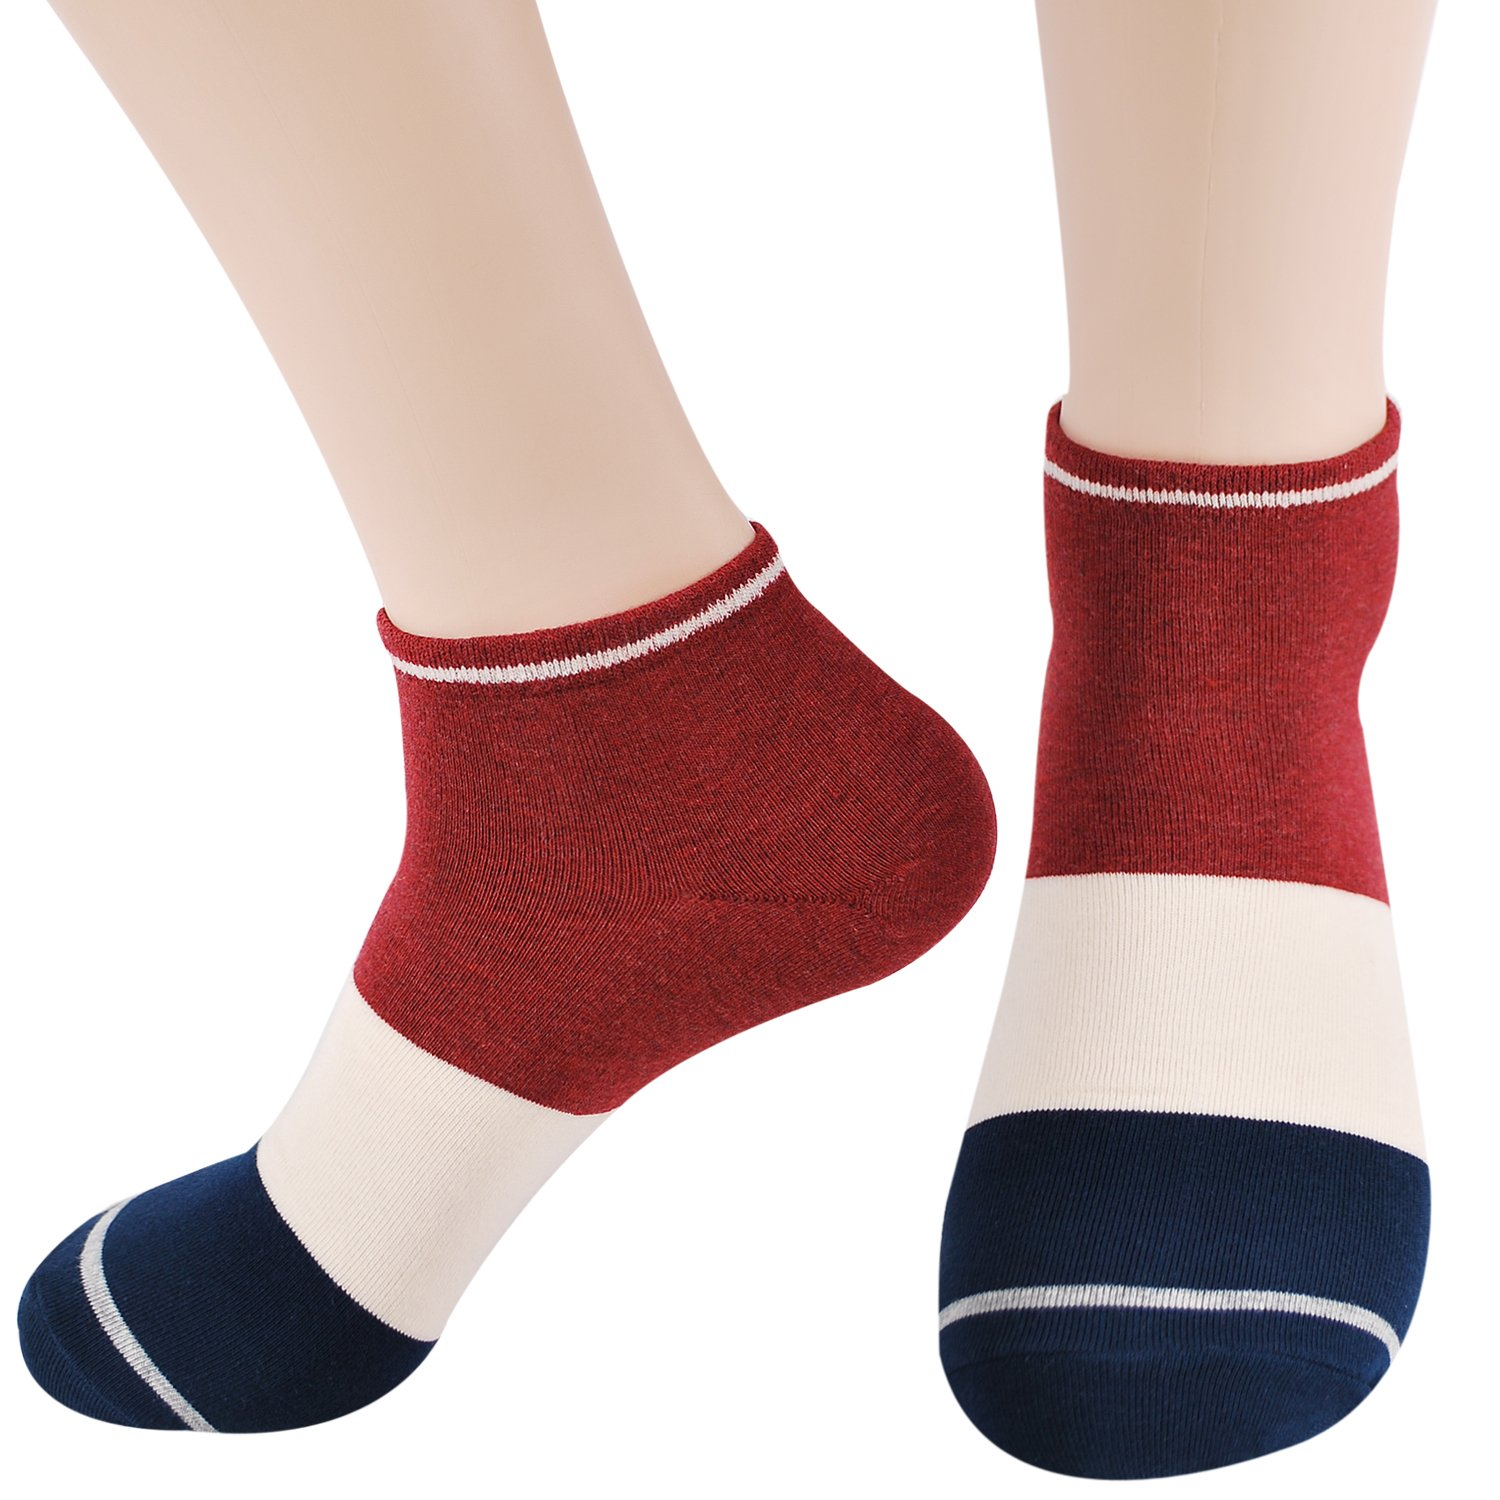 Mens Ladies Trainer Liners Trainer Socks Ankle Socks 12 Pairs Cotton Size 4-11